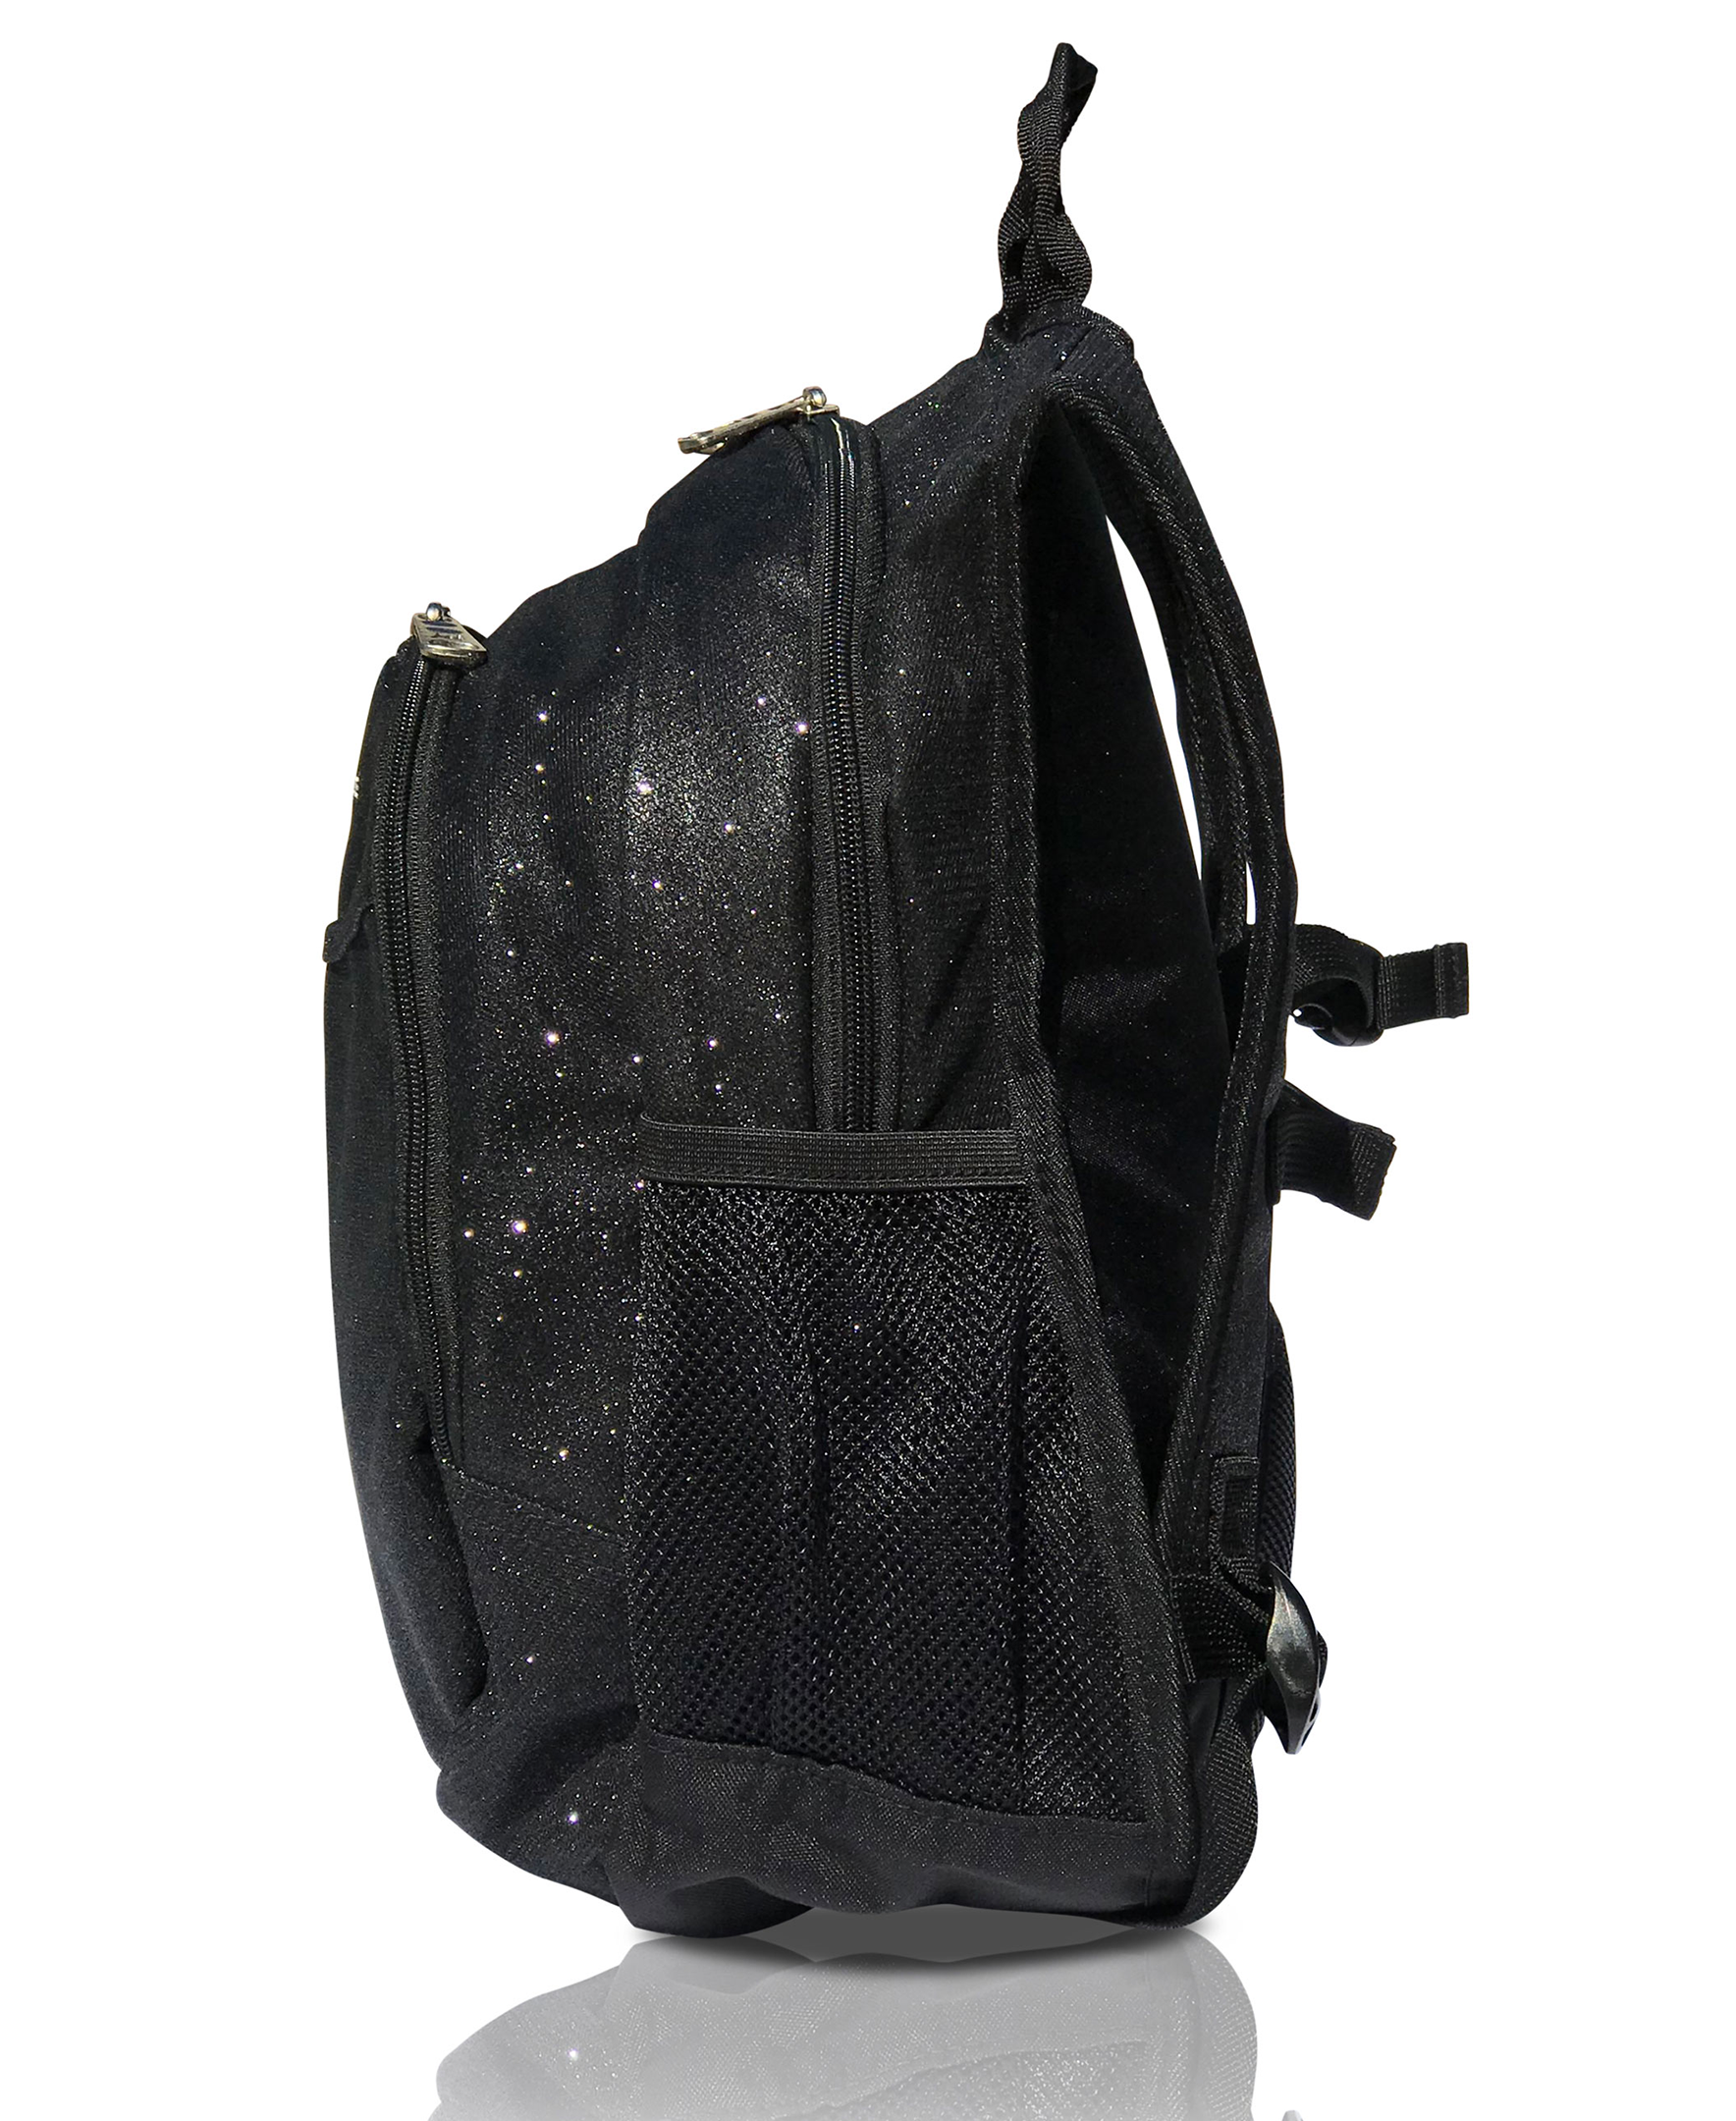 Obersee Mini Preschool Backpack for Girls with integrated Insulated Snack Cooler | Sparkle Black Design